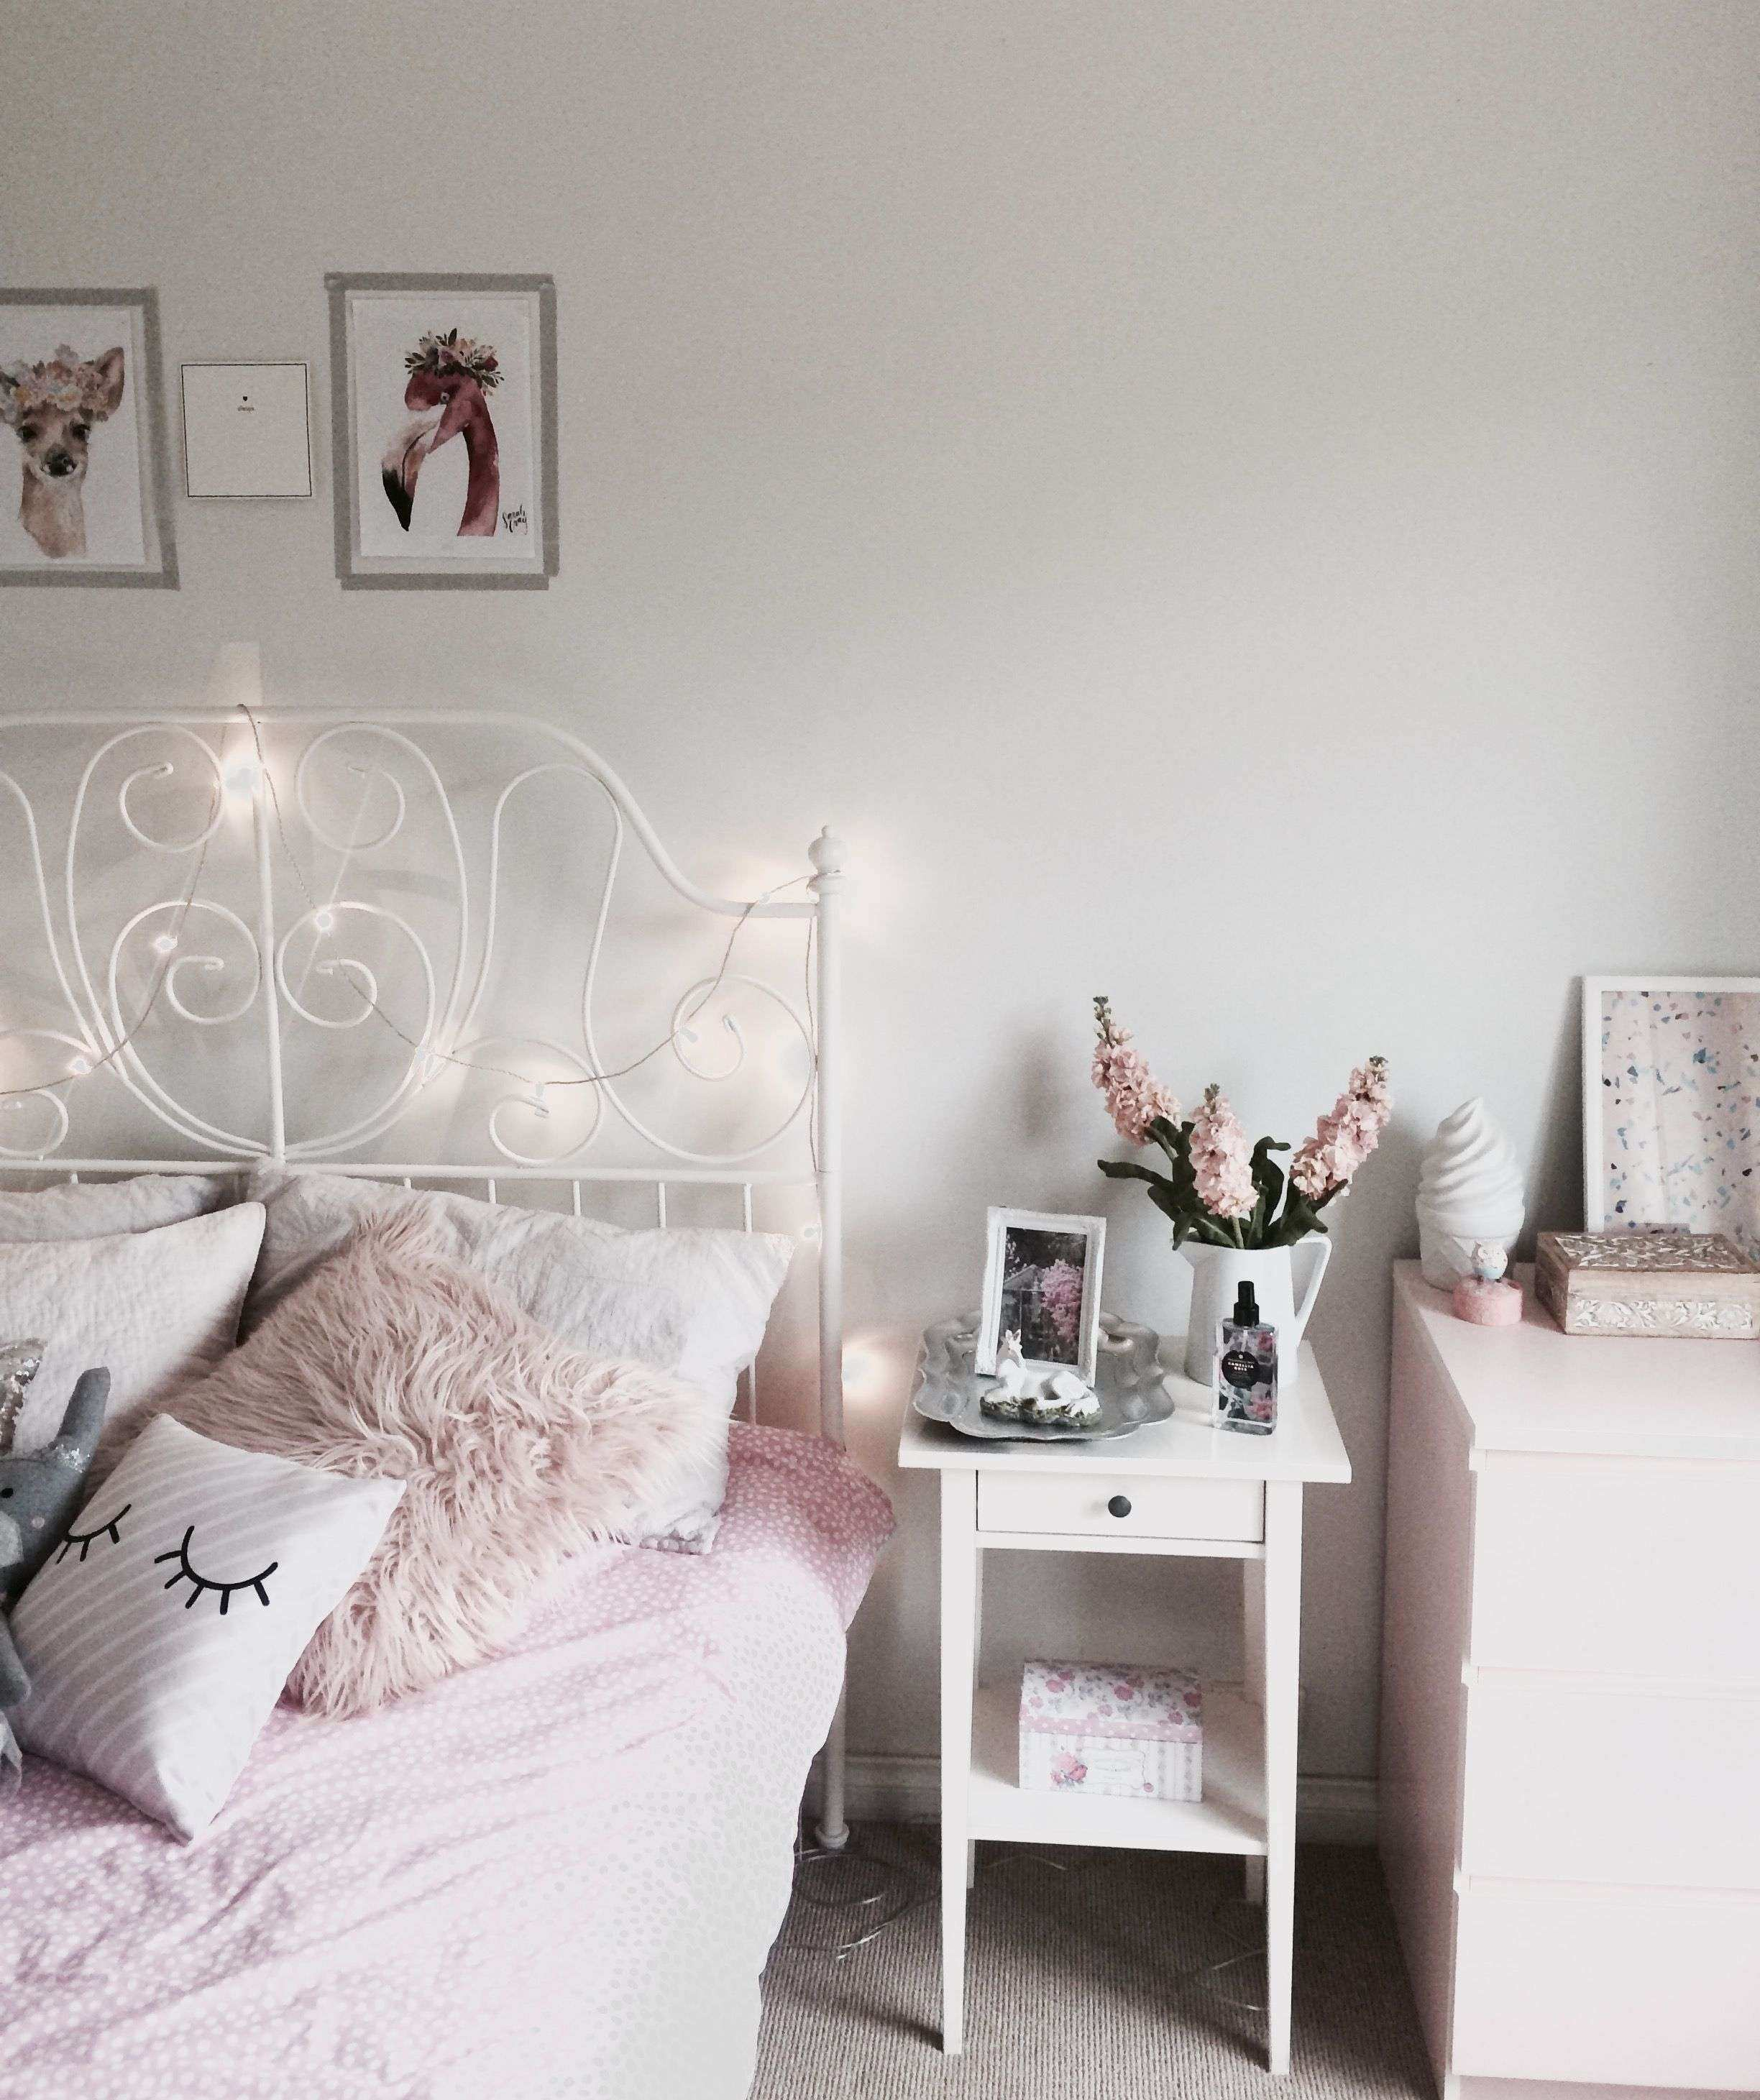 46 Awesome Girls Bedroom Decor Ideas